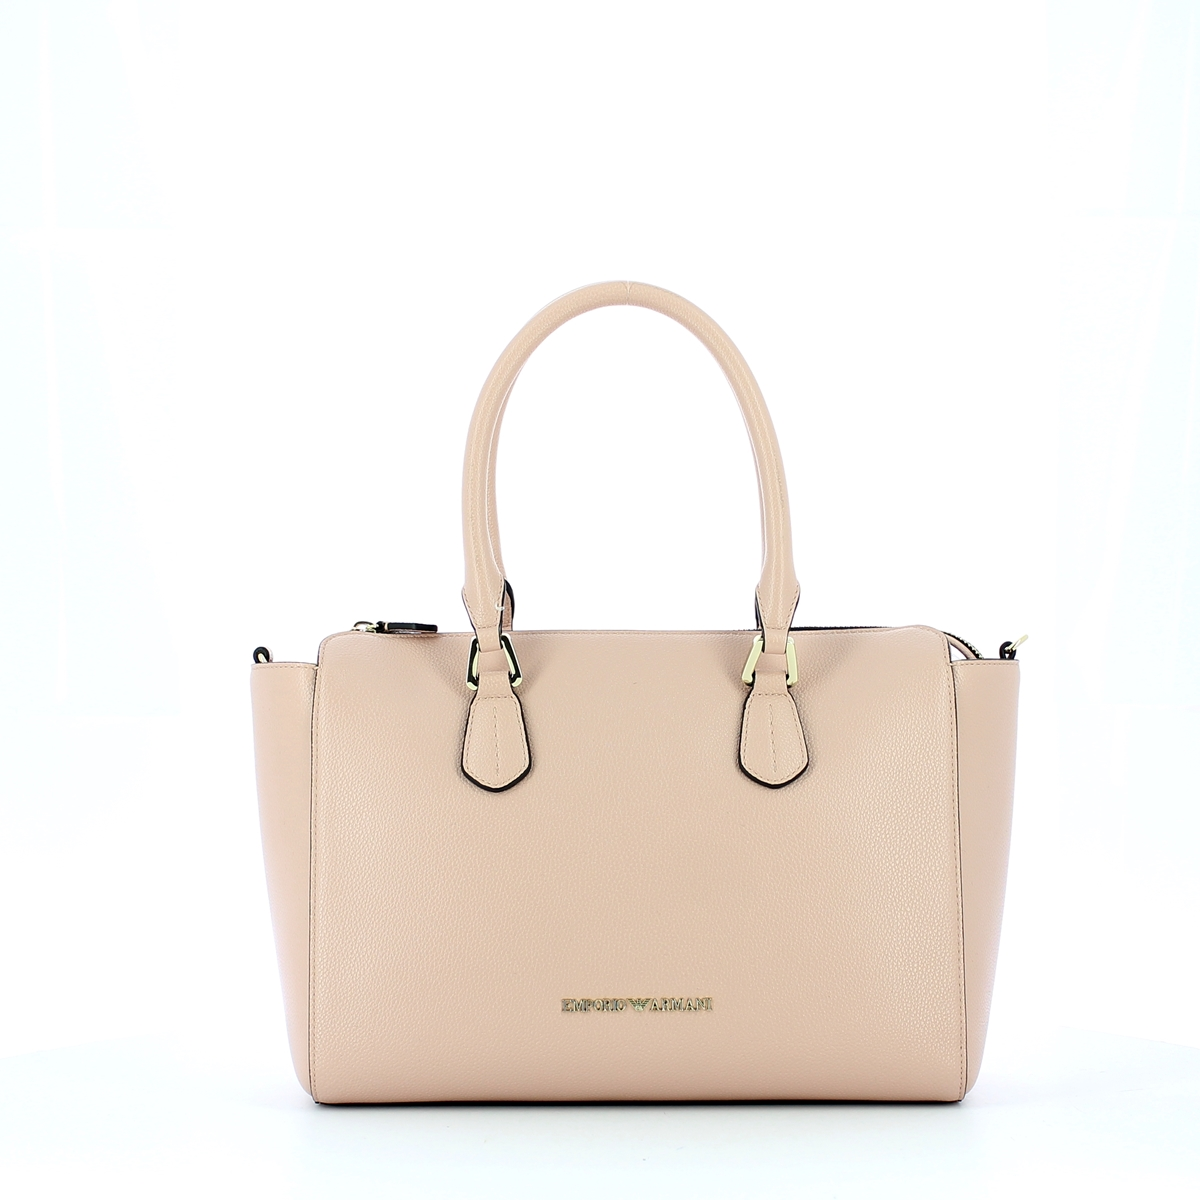 WOMEN'S TOTE BAG 2765790